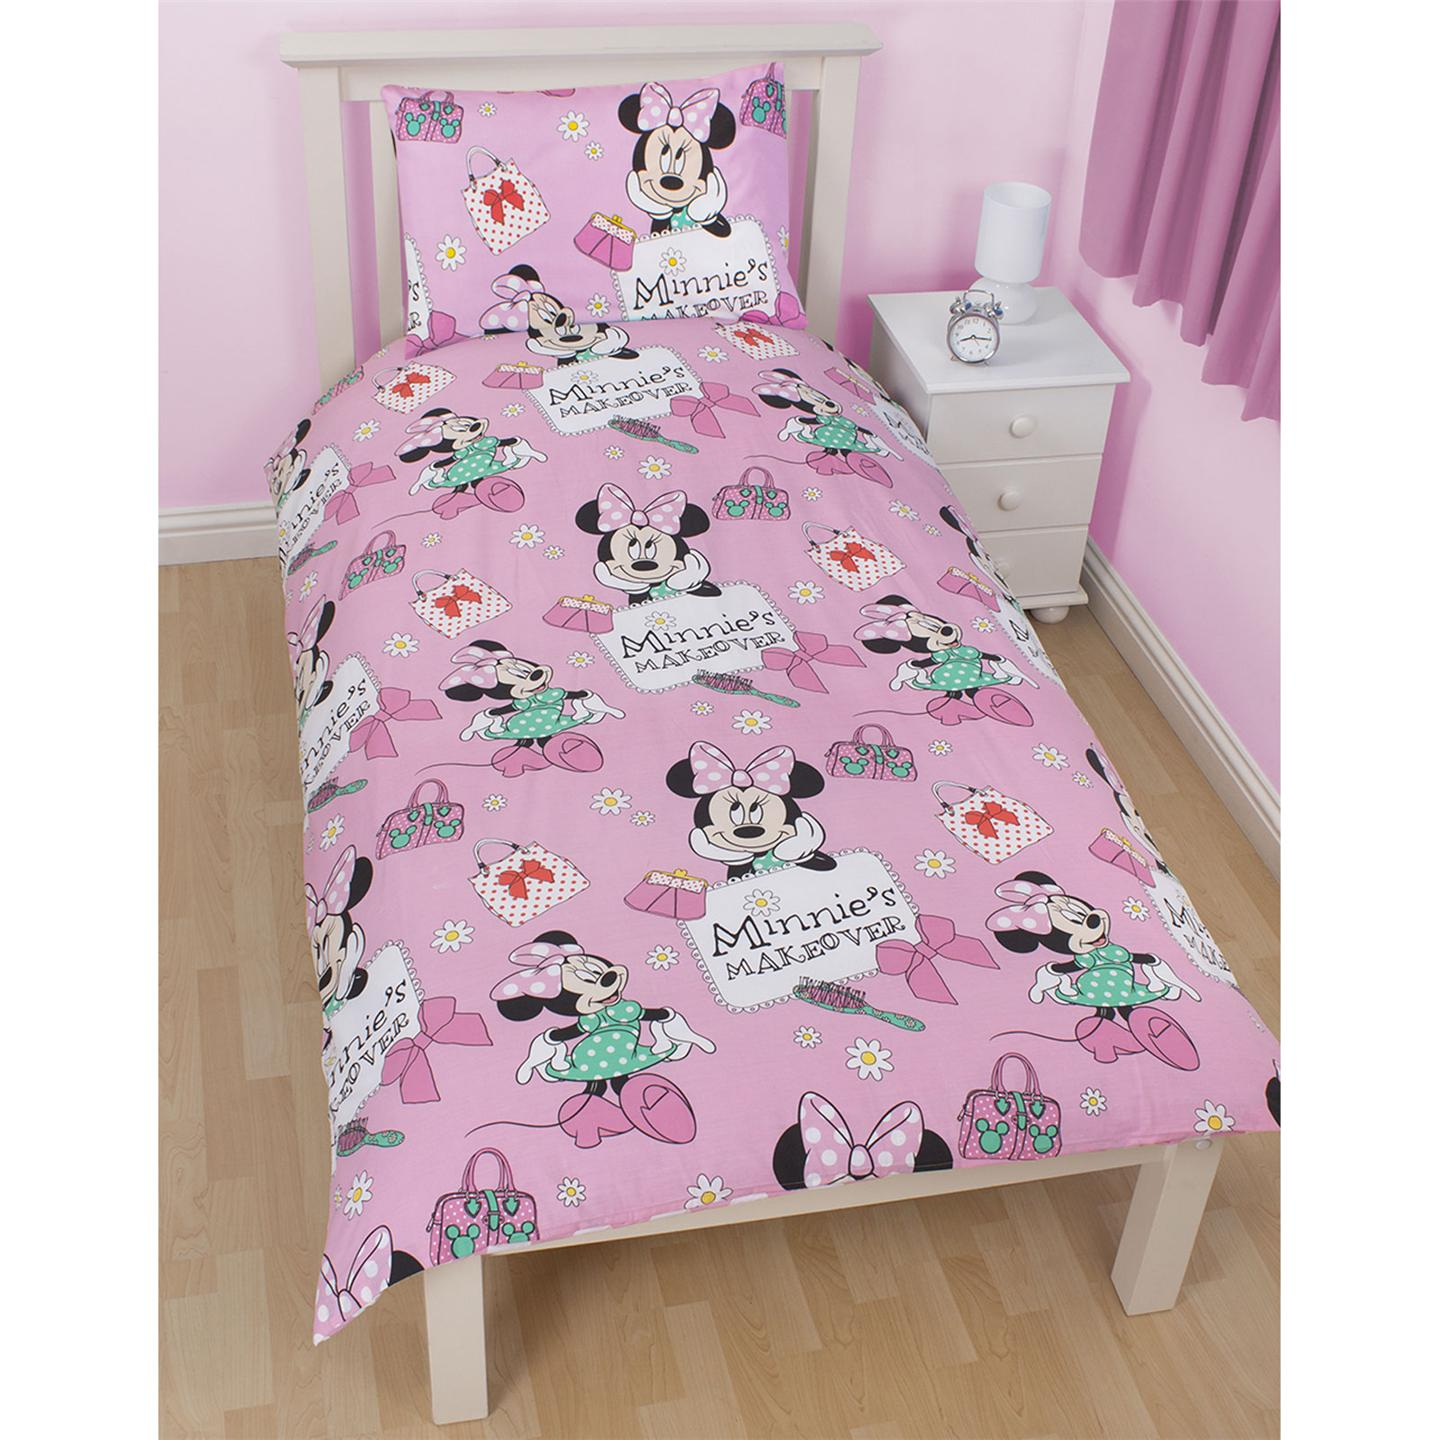 Disney minnie mouse makeover duvet cover matching 72 drop curtains new